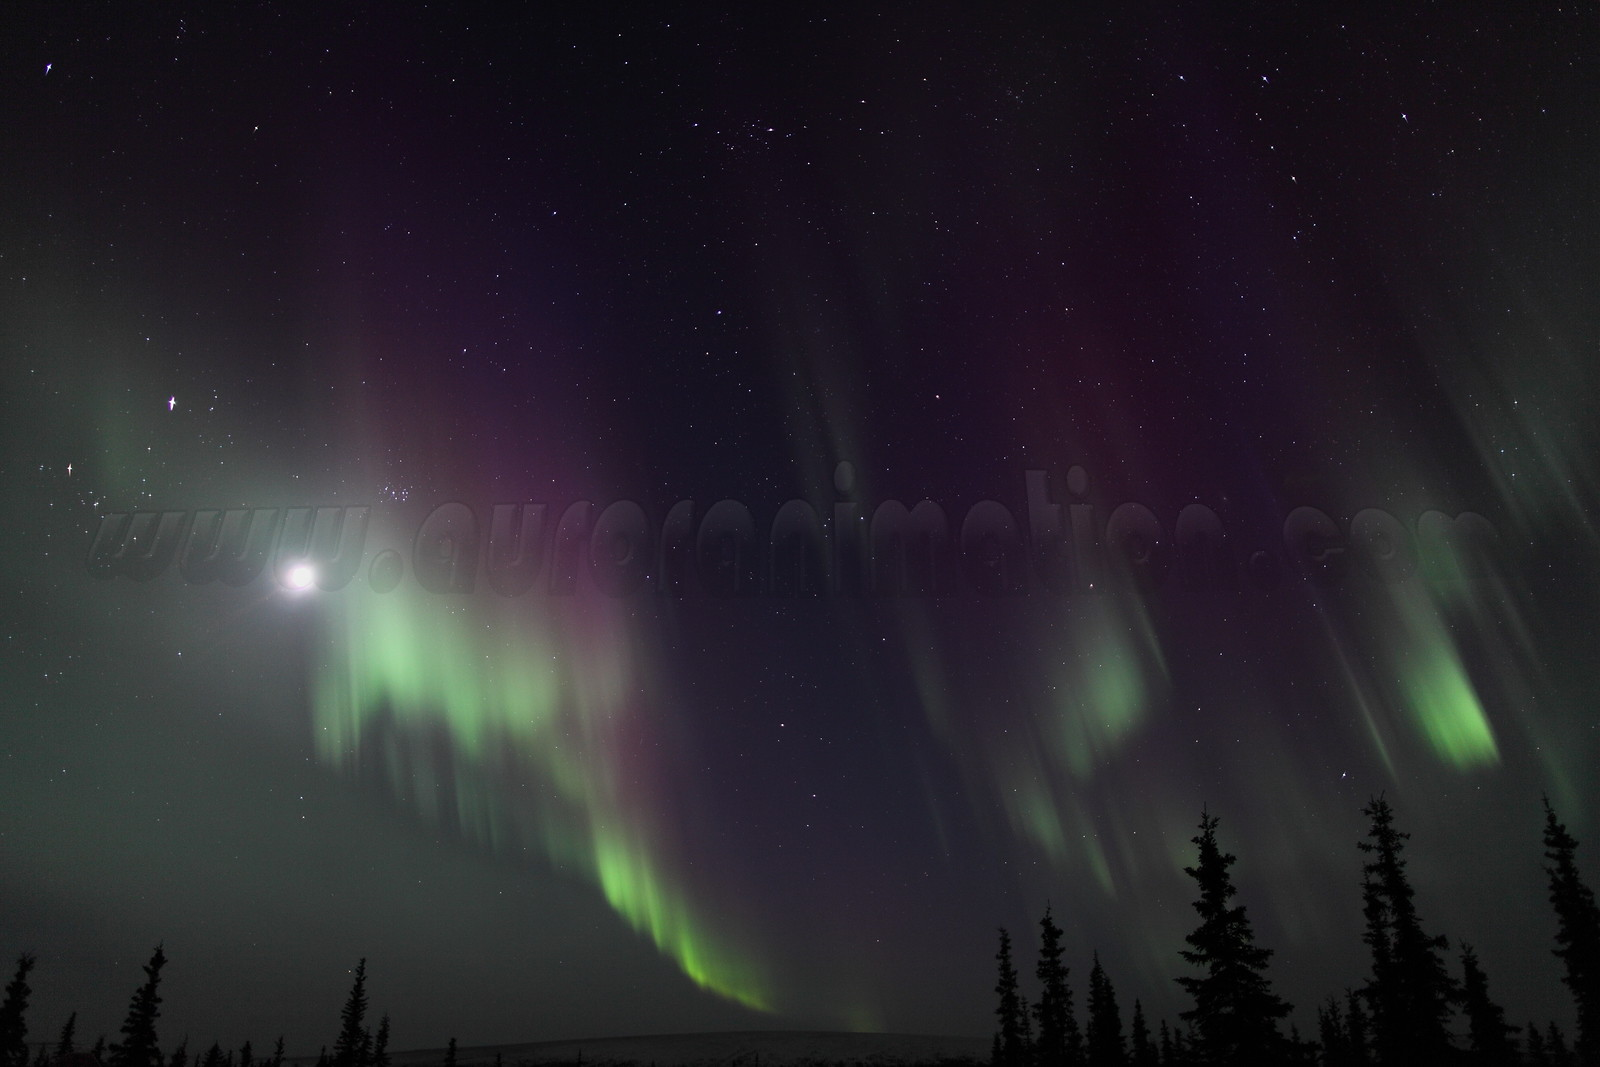 Northern Lights with Moon, Jupiter, Pleiades and constellations Taurus, Perseus and Cassiopeia at 11:23 PM on March 16, 2013 - Arctic Circle, Alaska <br /> <br /> Canon 5D MKII with EF 24mm f/1.4L II